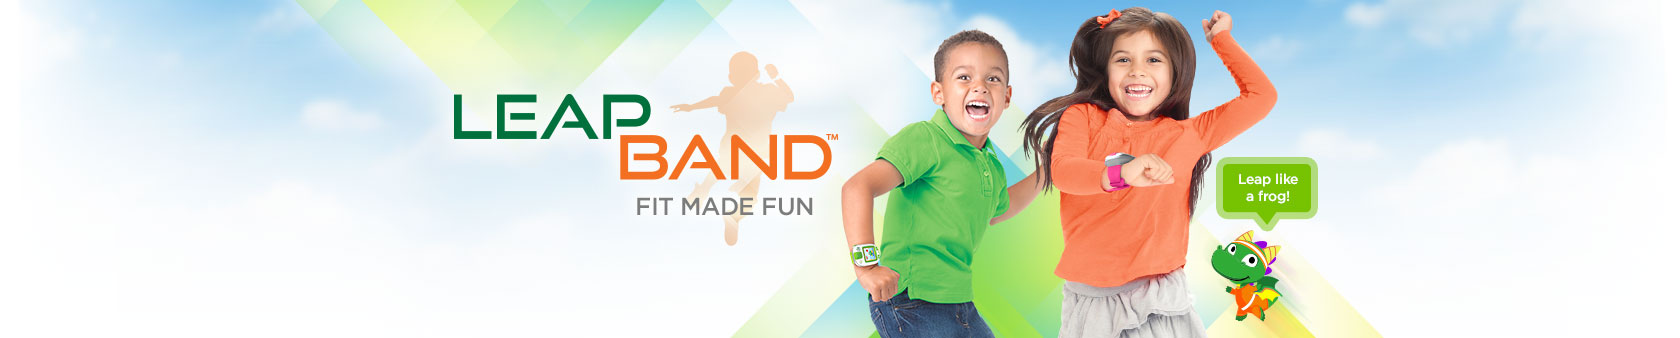 Fit Made Fun:  On the Sidelines with Leapband and Cliff Kids